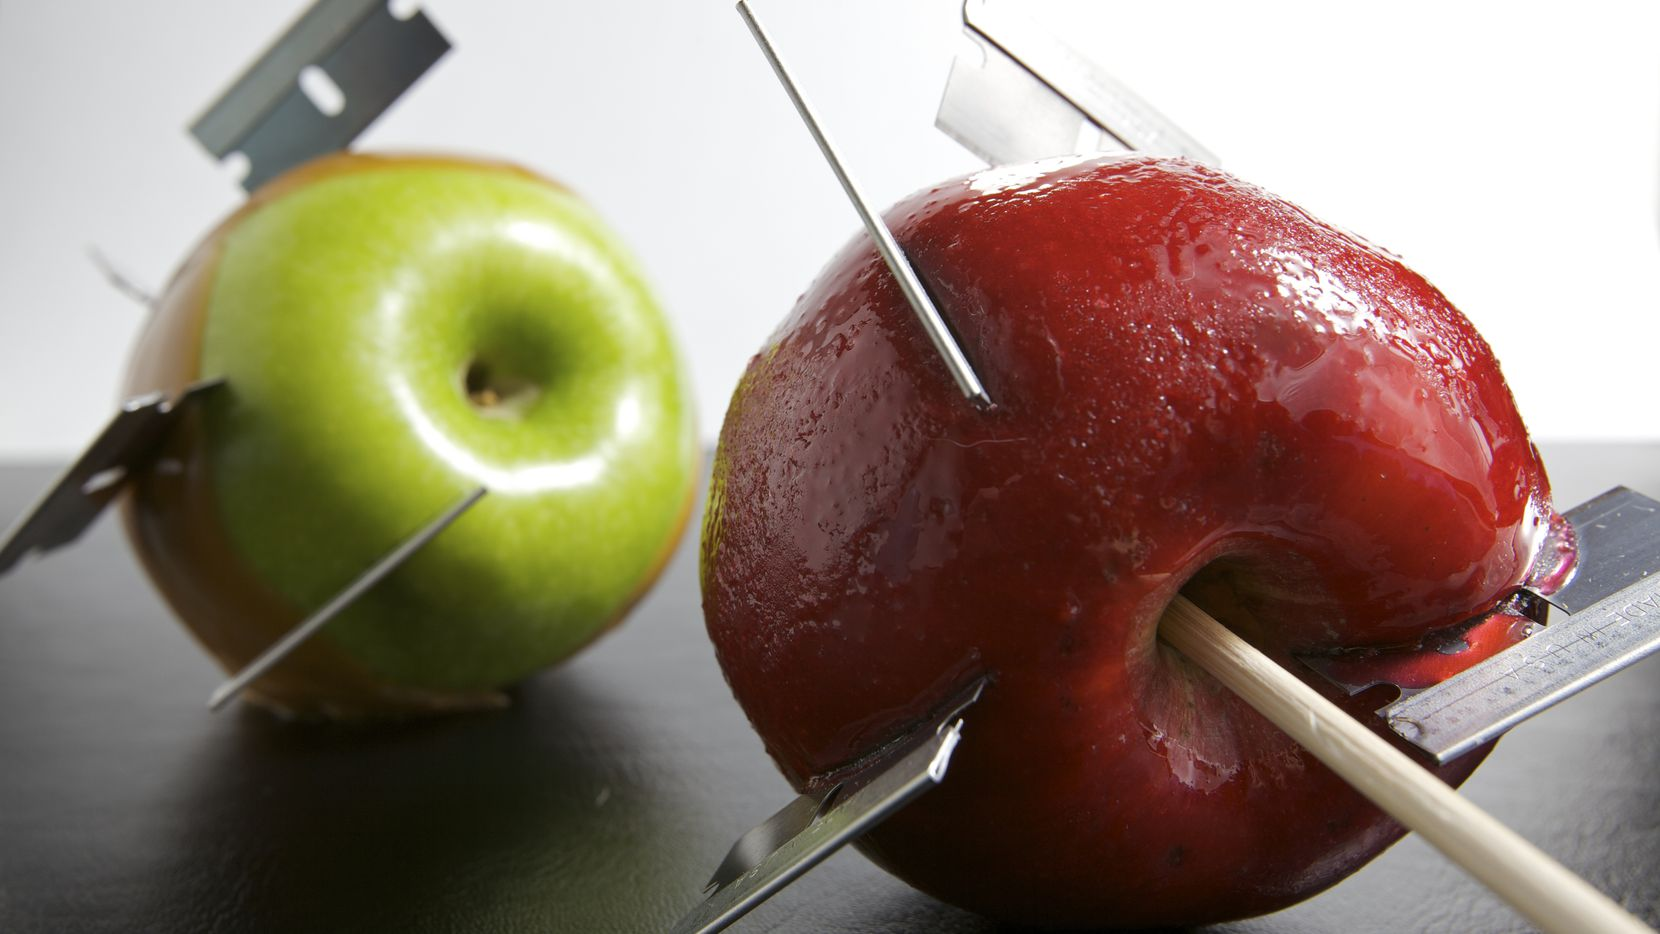 One green caramel apple, and one red candy apple with razor blades.